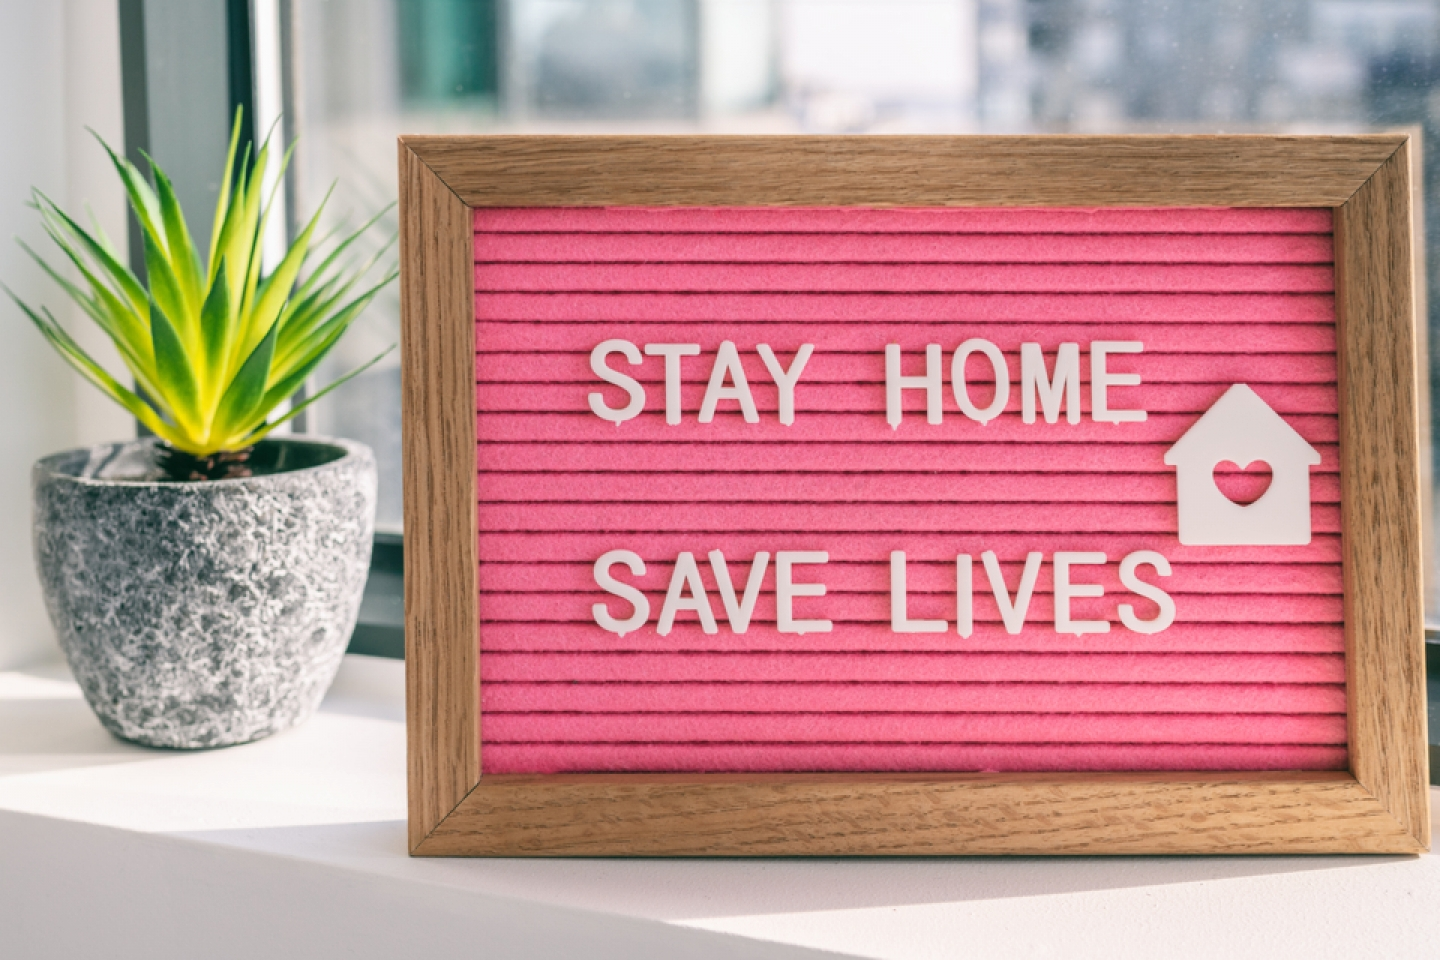 "COVID-19 Coronavirus ""STAY HOME SAVE LIVES"" viral social media message sign with text for social distancing awareness. COVID-19 staying at home concept. Flatten the curve."